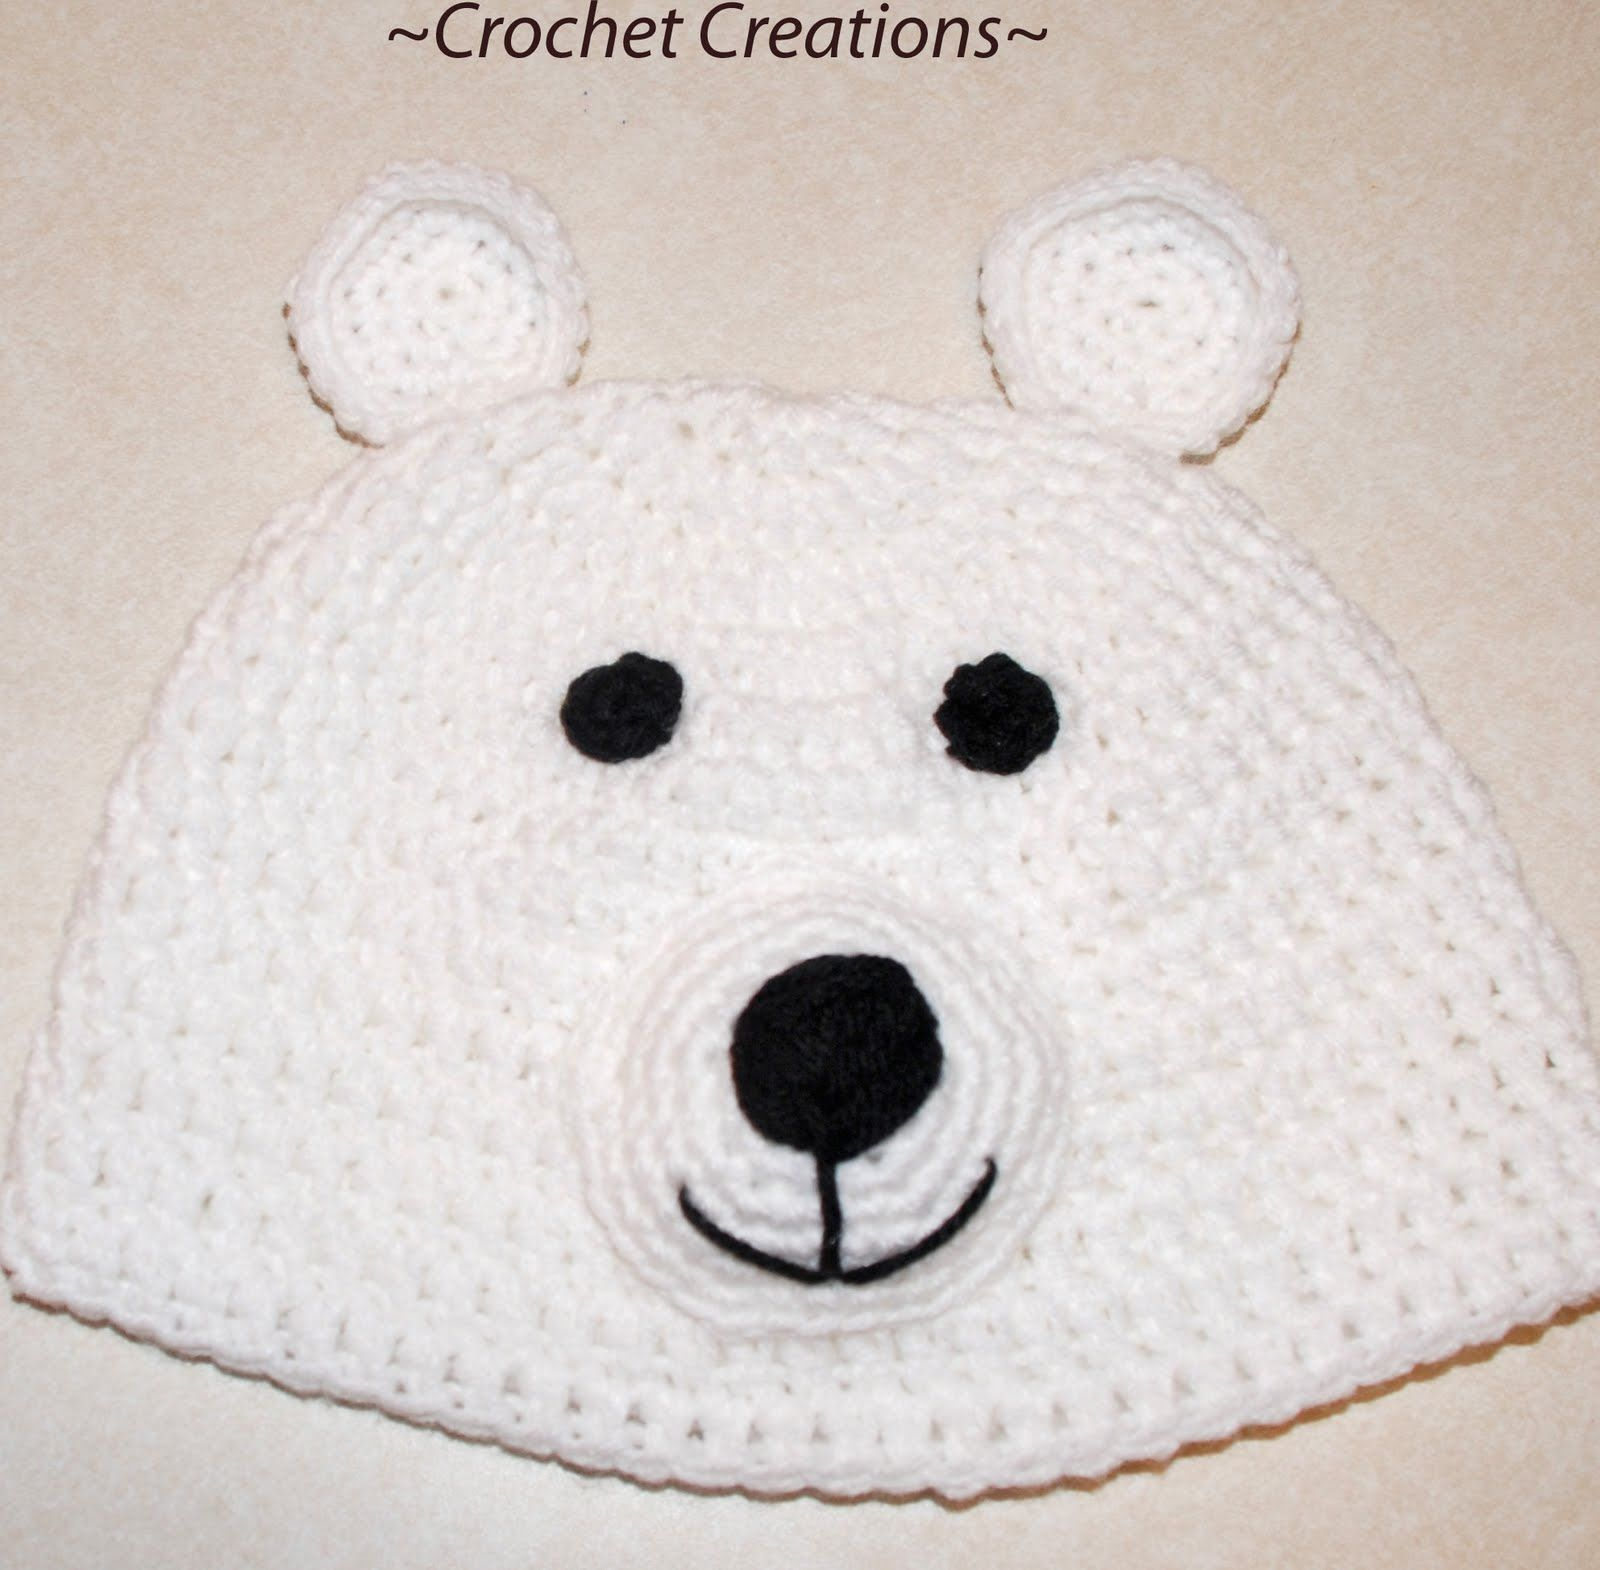 Amys crochet creative creations crochet polar bear child hat all crochet creative creations free patterns and instructions crochet polar bear child hat she has a whole bunch of diff dt1010fo